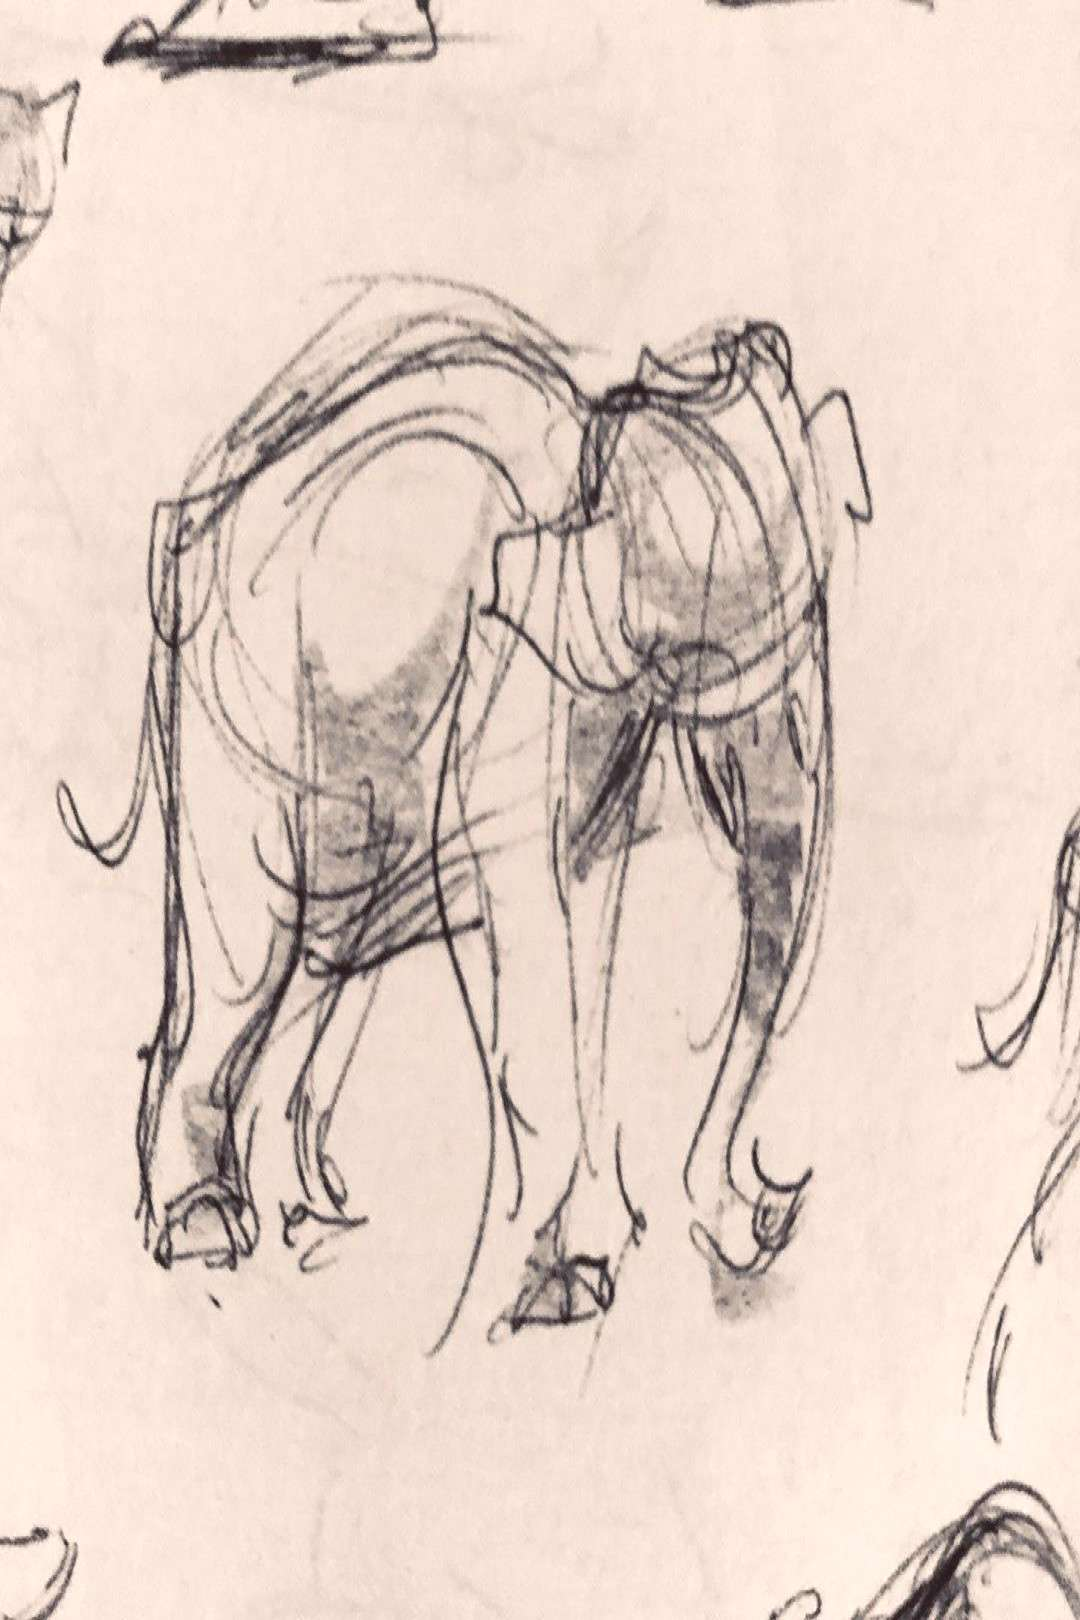 #draw #drawings #drawing doodles #sketch #sketches #animaldrawing